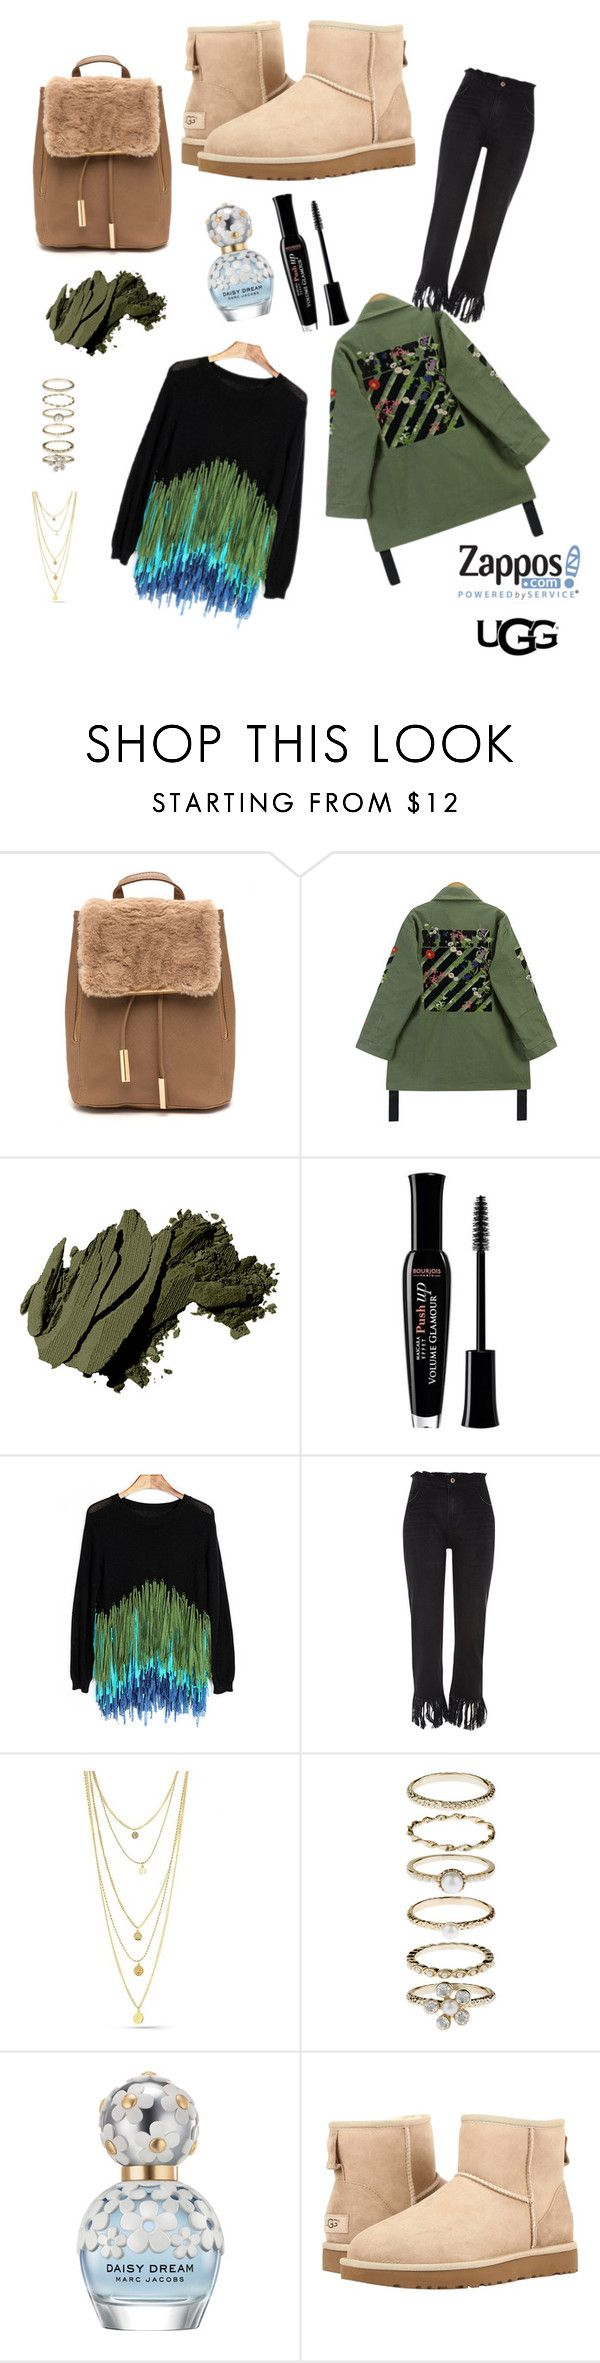 """""""Ugg?? My favourite boots!!!❤️"""" by ocagiuliva ❤ liked on Polyvore featuring Chicnova Fashion, Bobbi Brown Cosmetics, Bourjois, River Island, Accessorize, Marc Jacobs, UGG Australia, ugg and contestentry"""